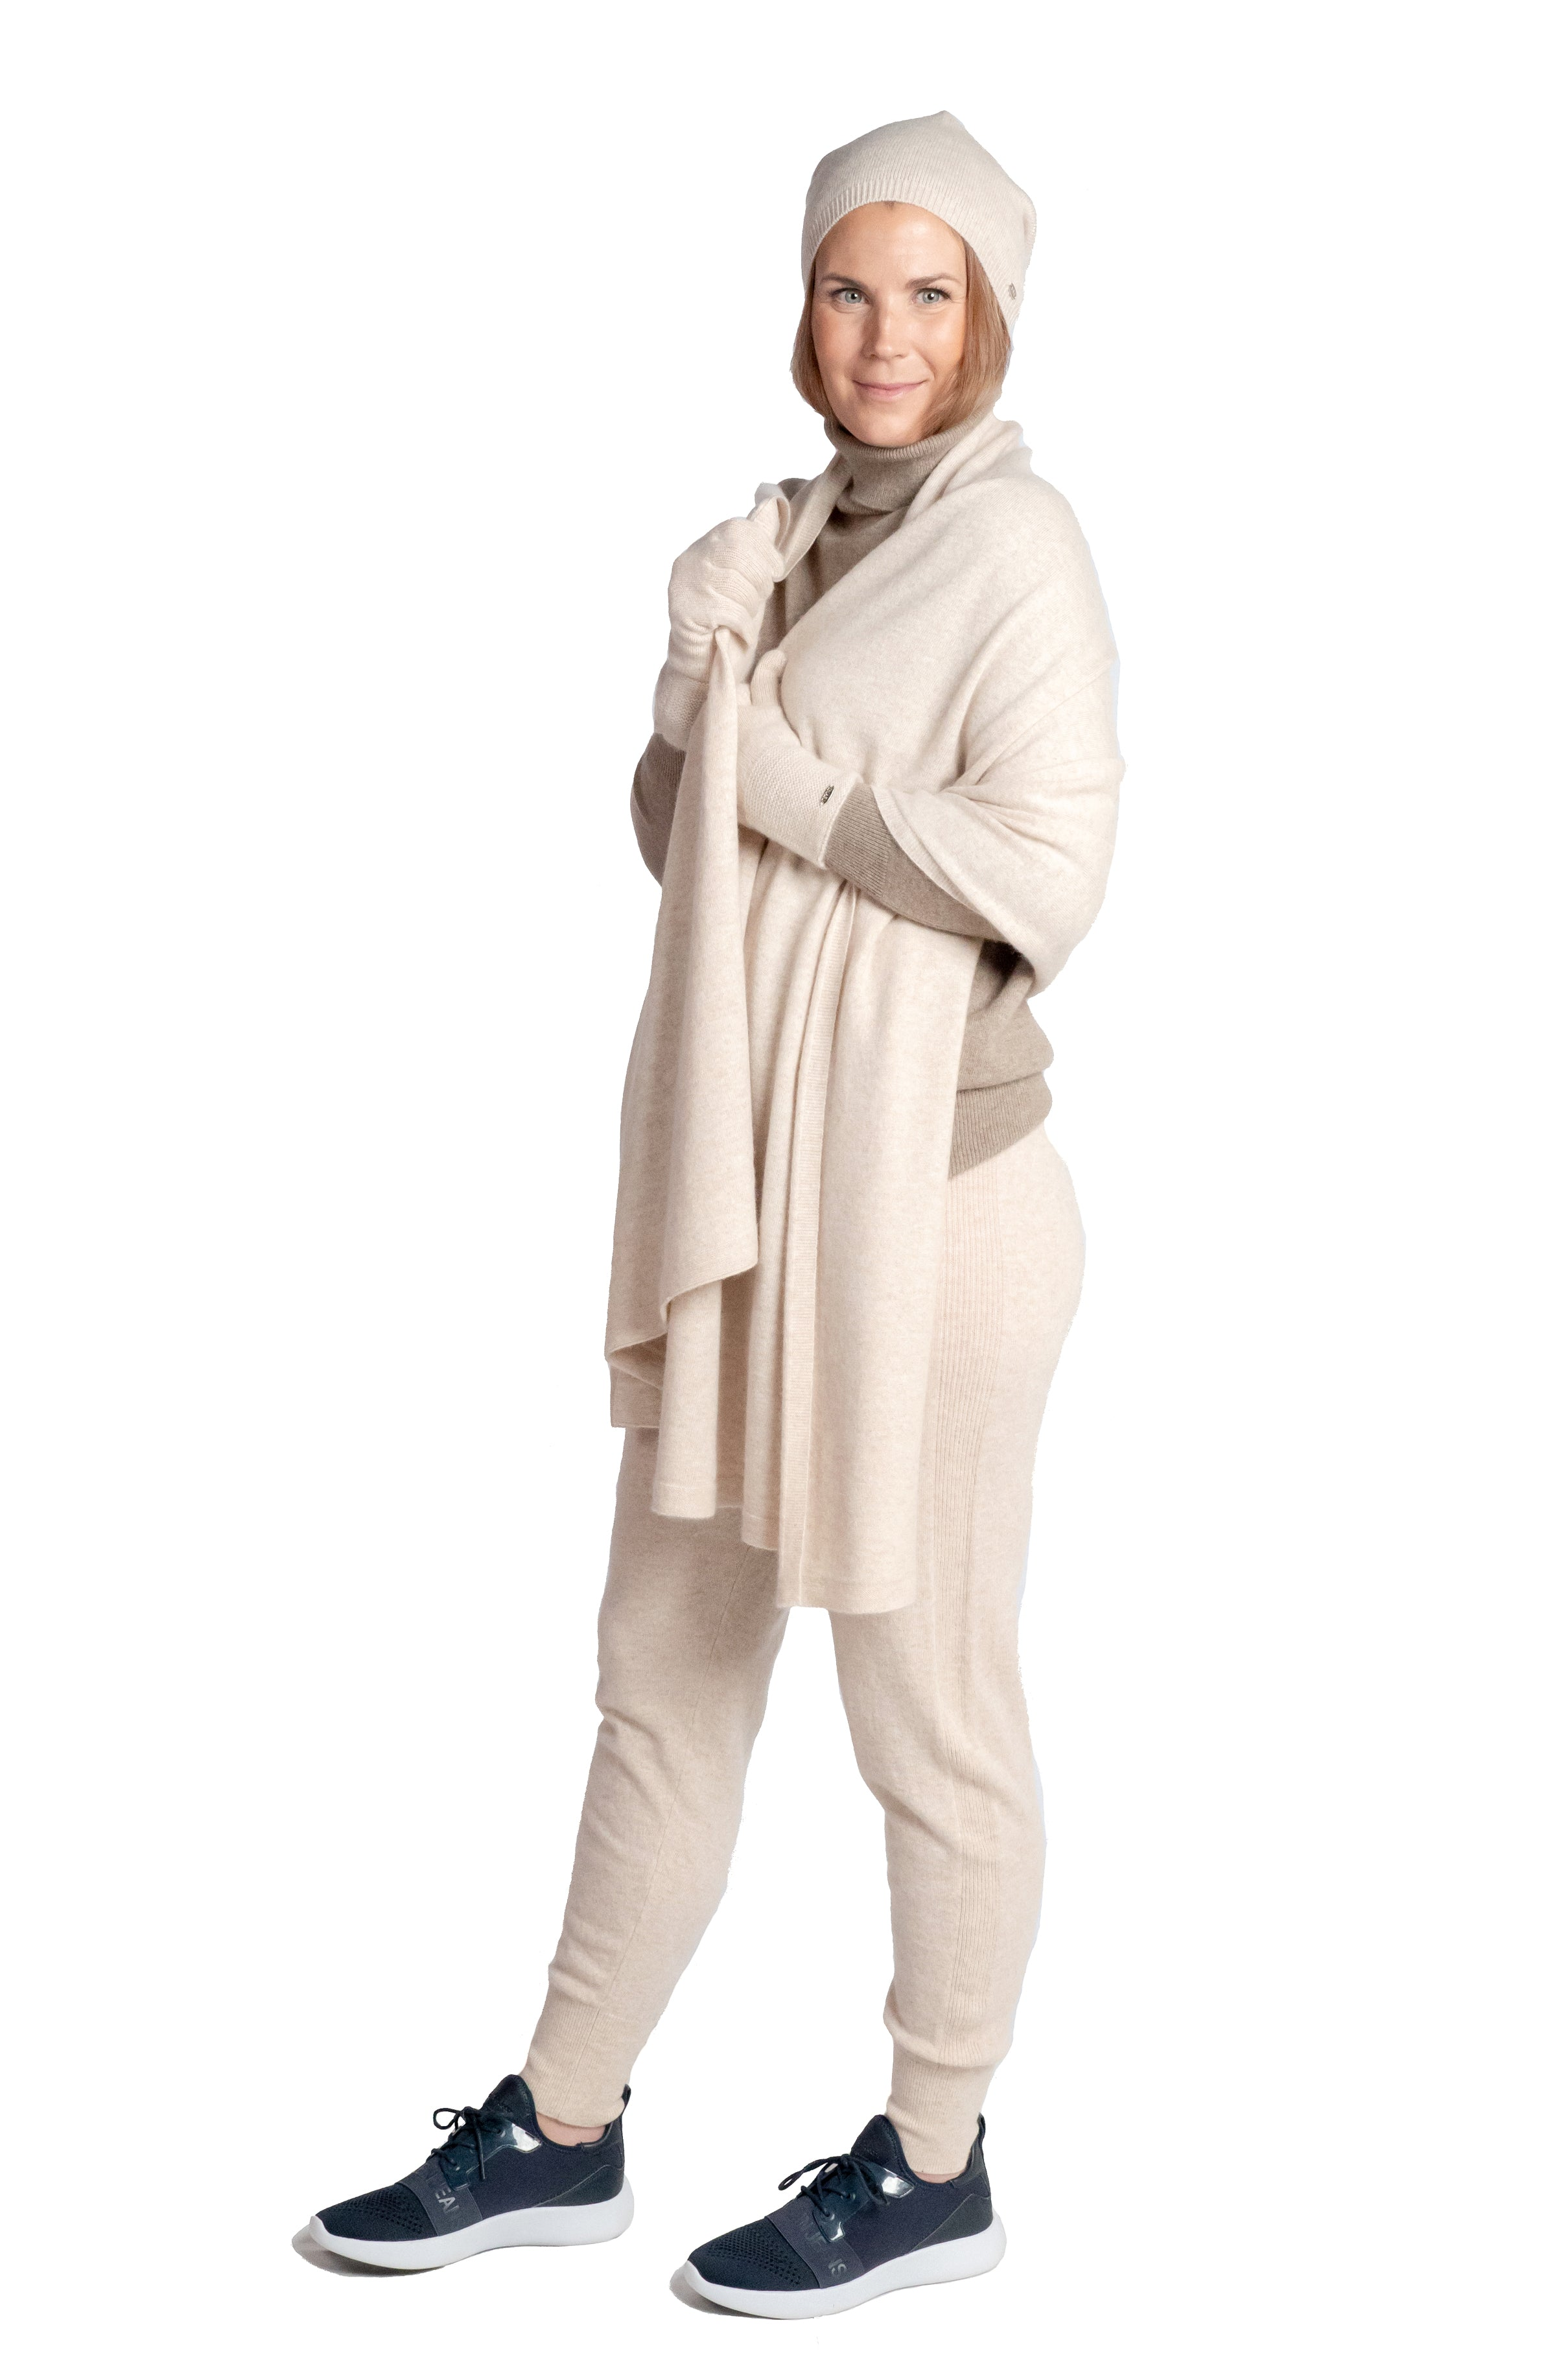 Inari Women's beige cashmere scarf / shawl - 100% high-quality cashmere - Inari-clothing.fi